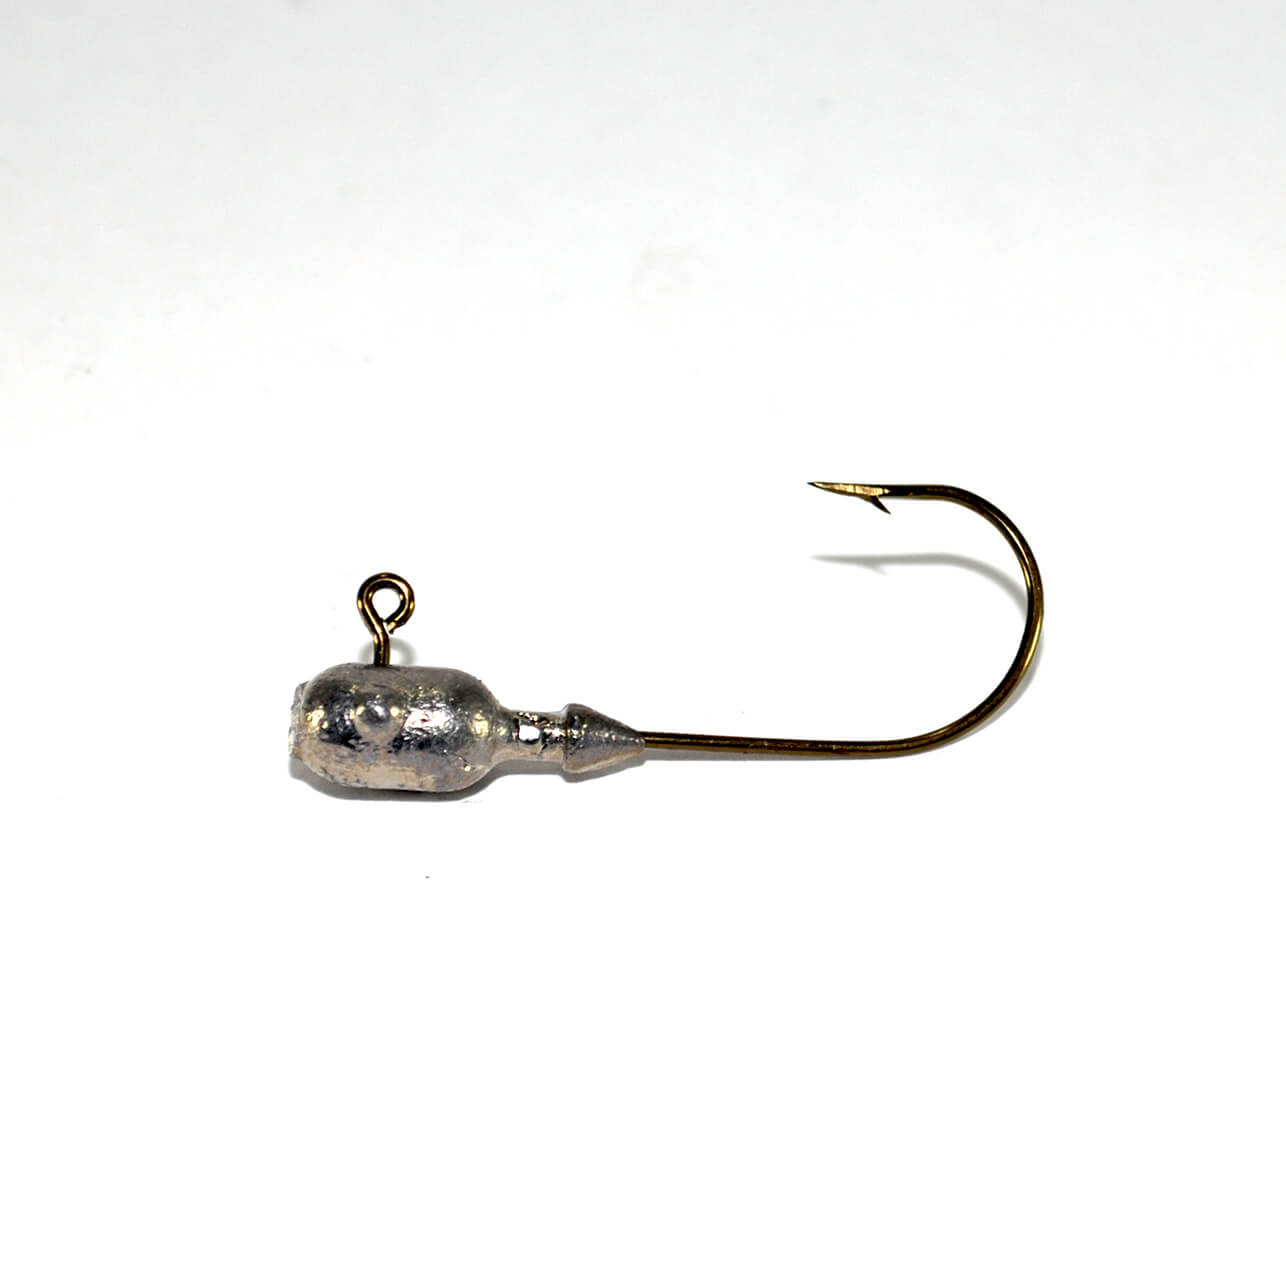 Tube jig head 4/0-7g